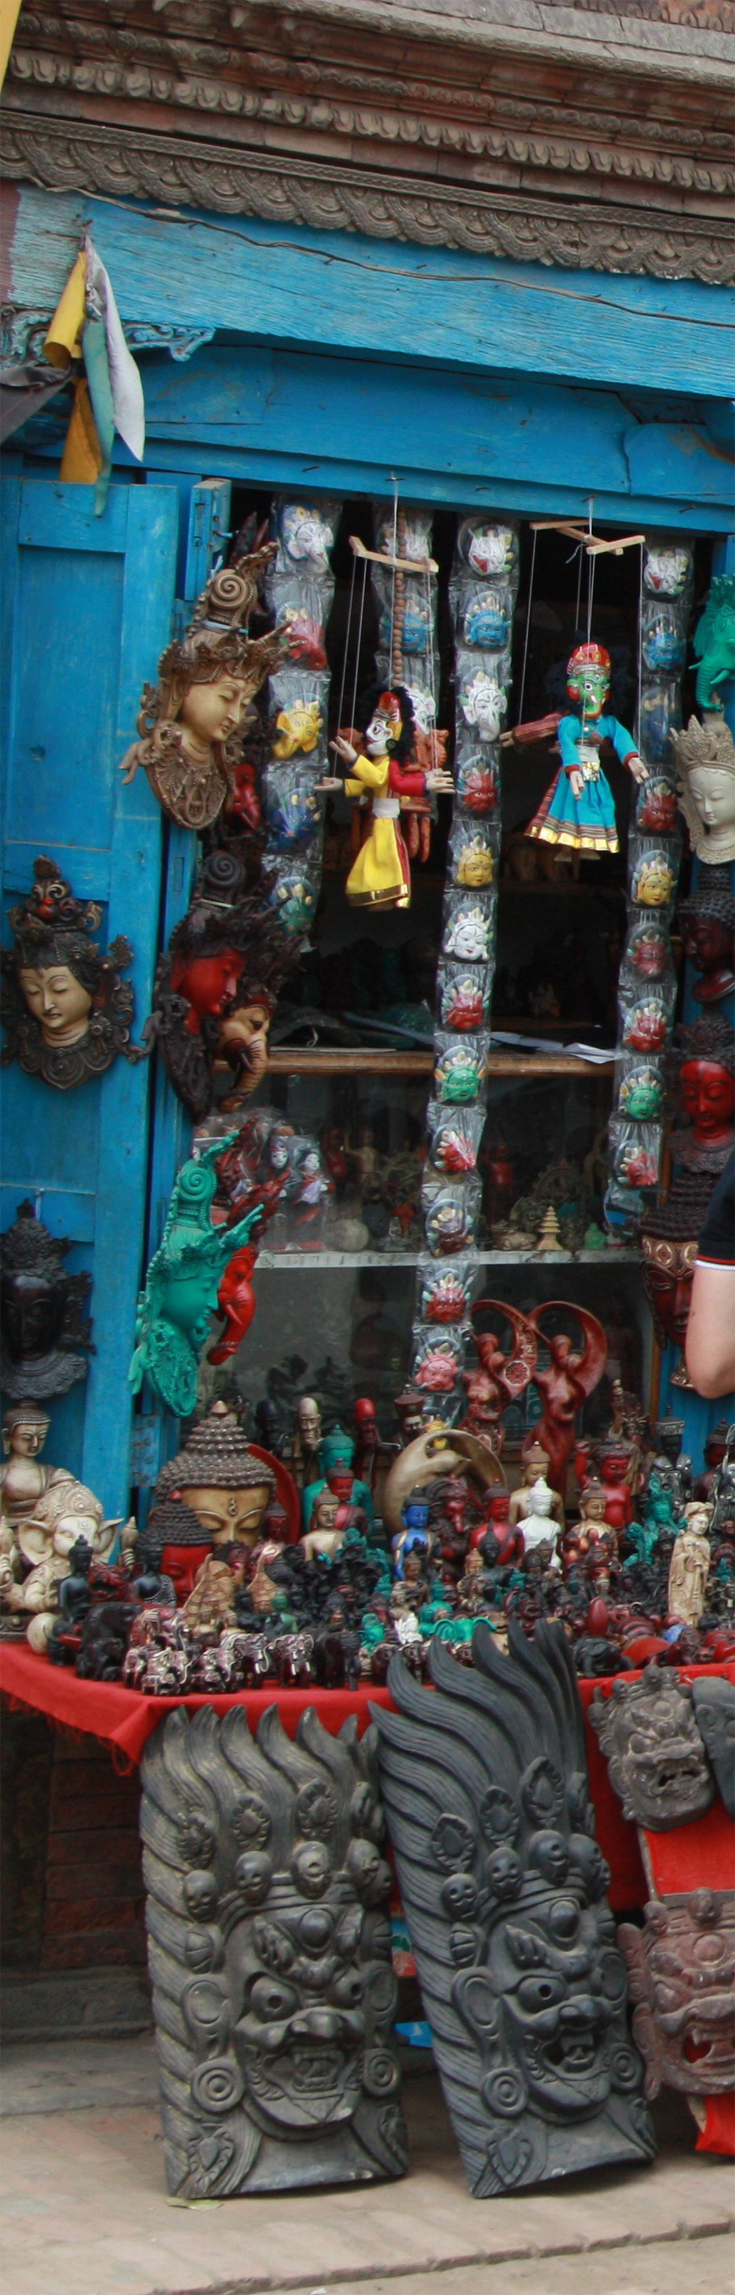 Typical souvenirs from Bhaktapur